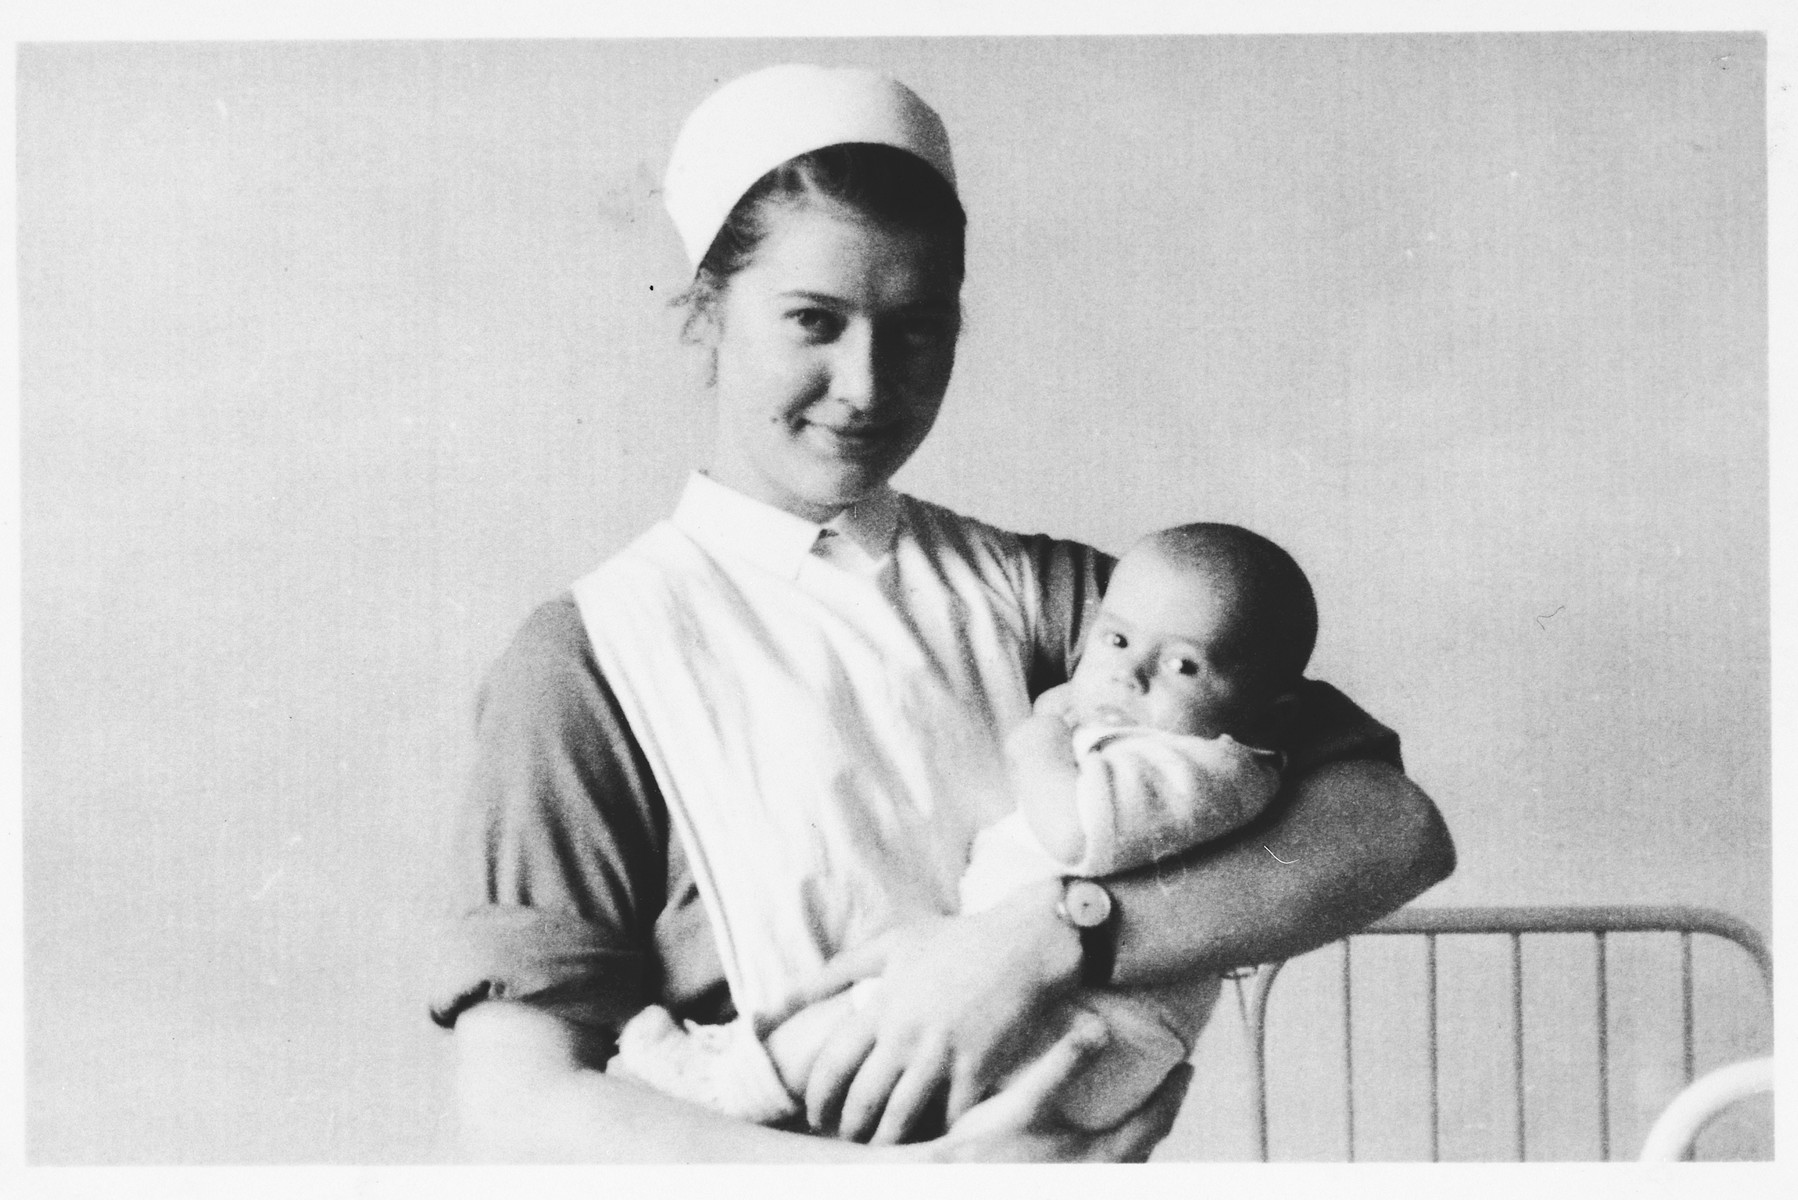 A nurse cradles a Jewish infant who is being sheltered at the Clinique Edith Cavell in Brussels, Belgium.  The infant is Georges Abramowicz.